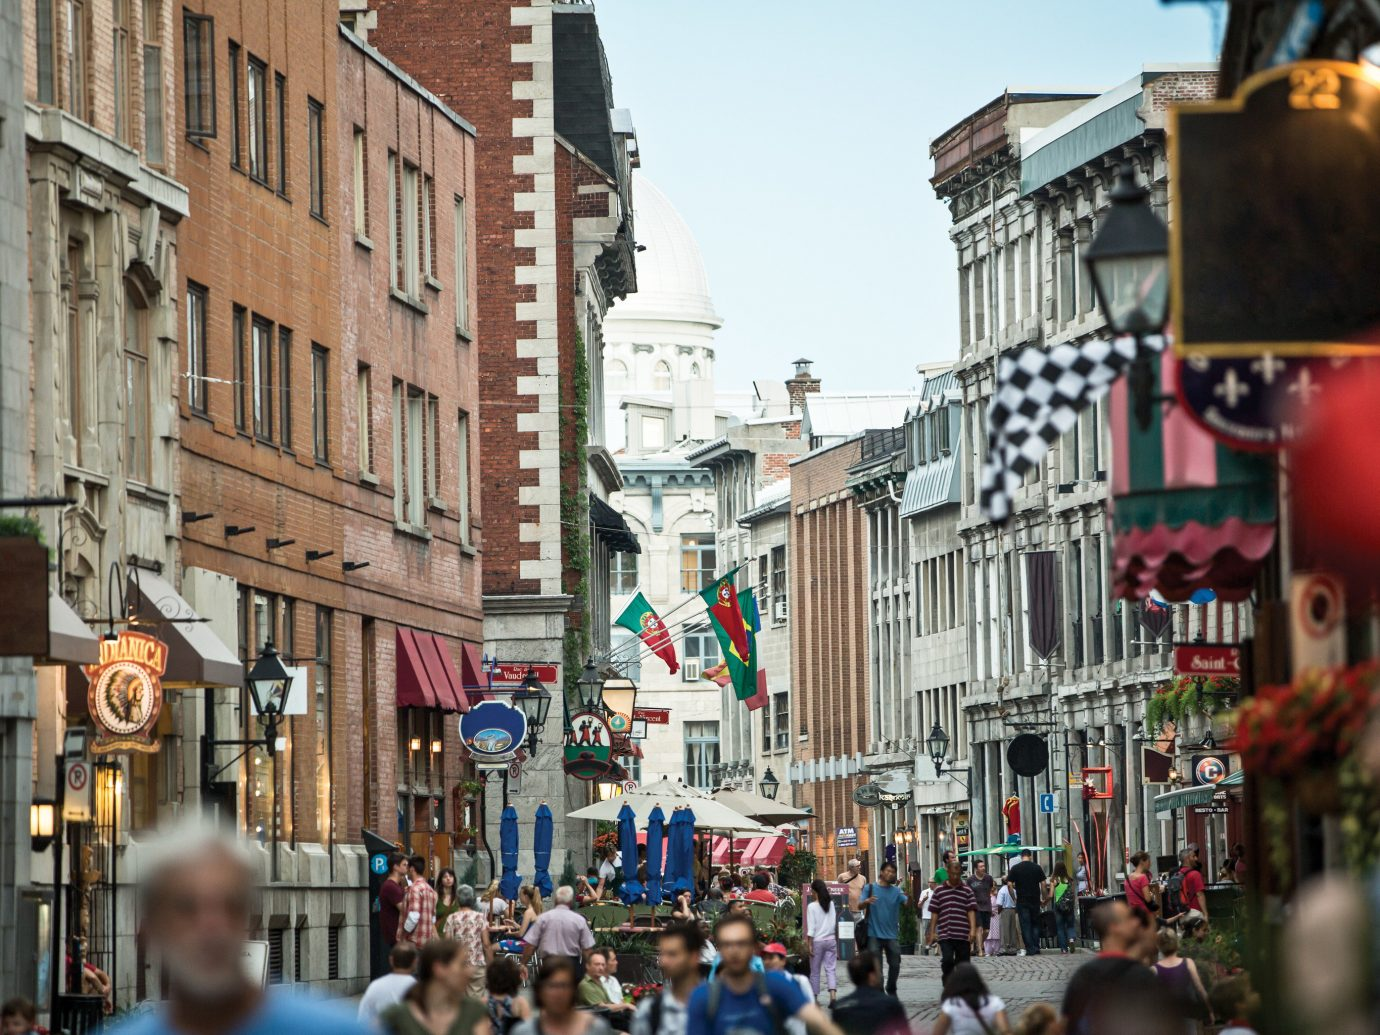 People on a busy shopping street in Montreal, Canada